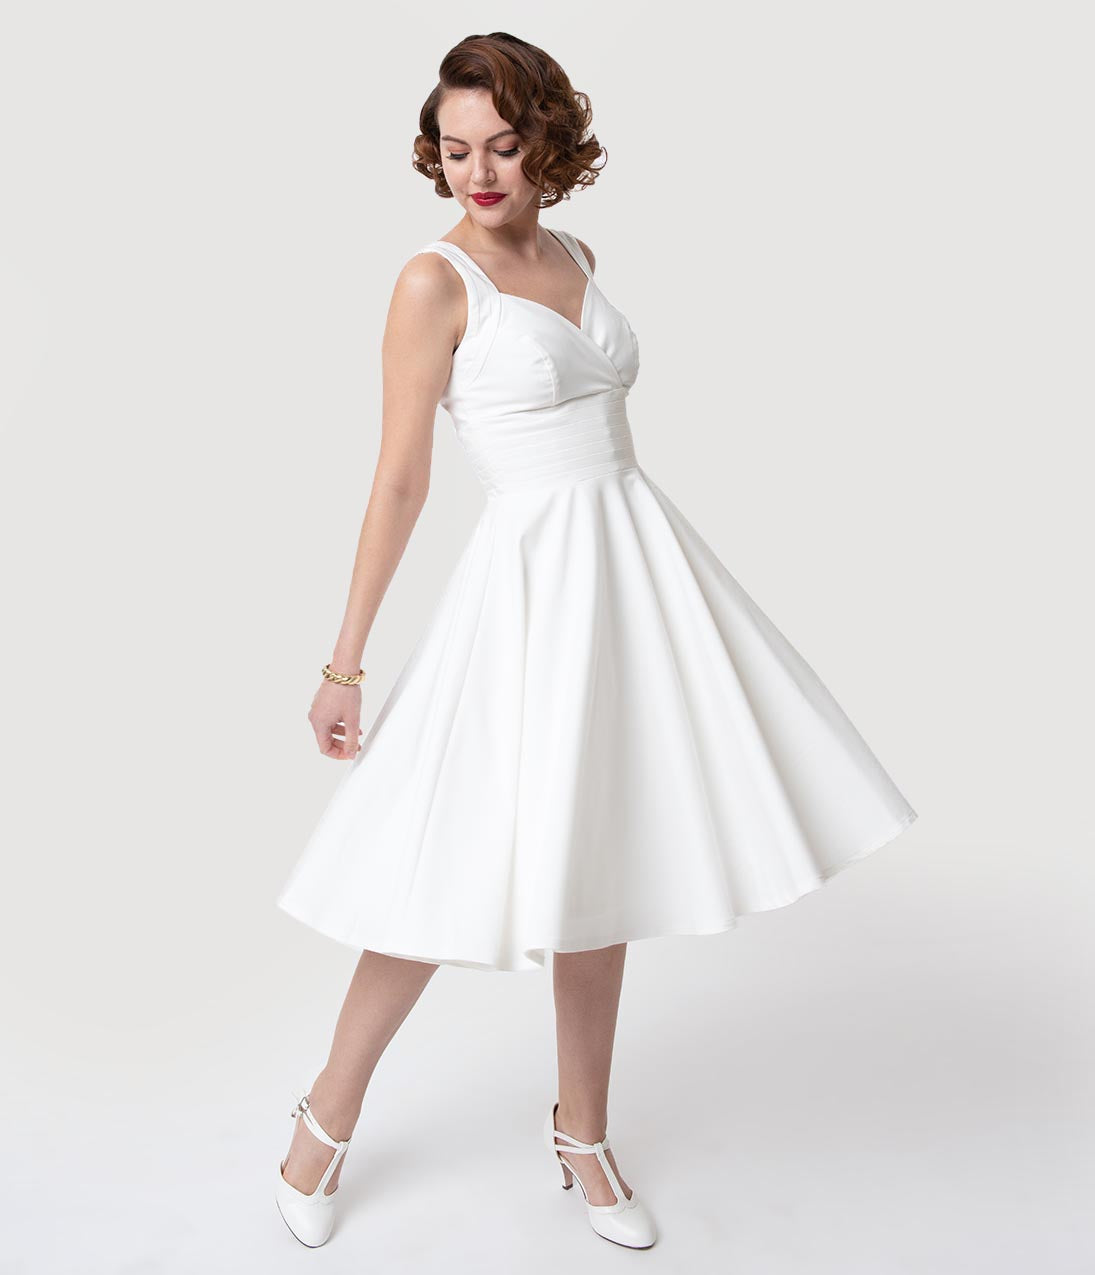 50s Wedding Dress, 1950s Style Wedding Dresses, Rockabilly Weddings Glamour Bunny 1950S White Sweetheart Trinity Swing Dress $116.00 AT vintagedancer.com